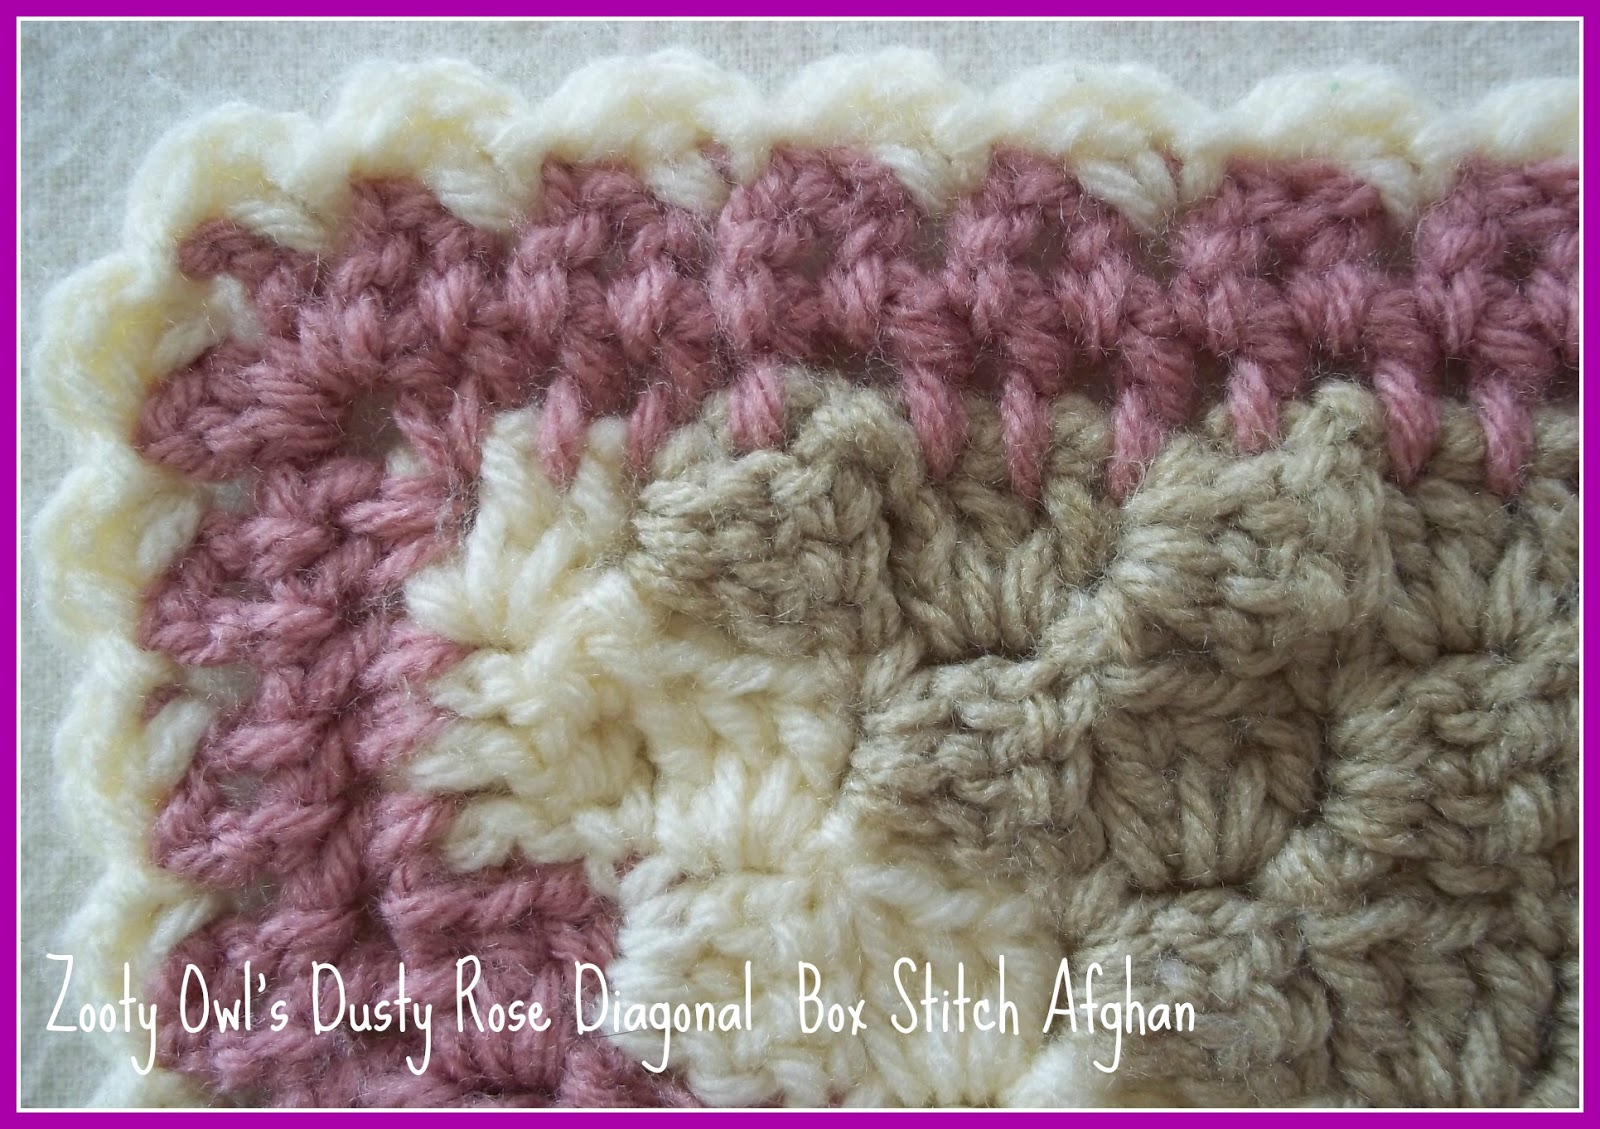 Zooty Owl\'s Crafty Blog: Diagonal Box Stitch Afghan - Dusty Rose